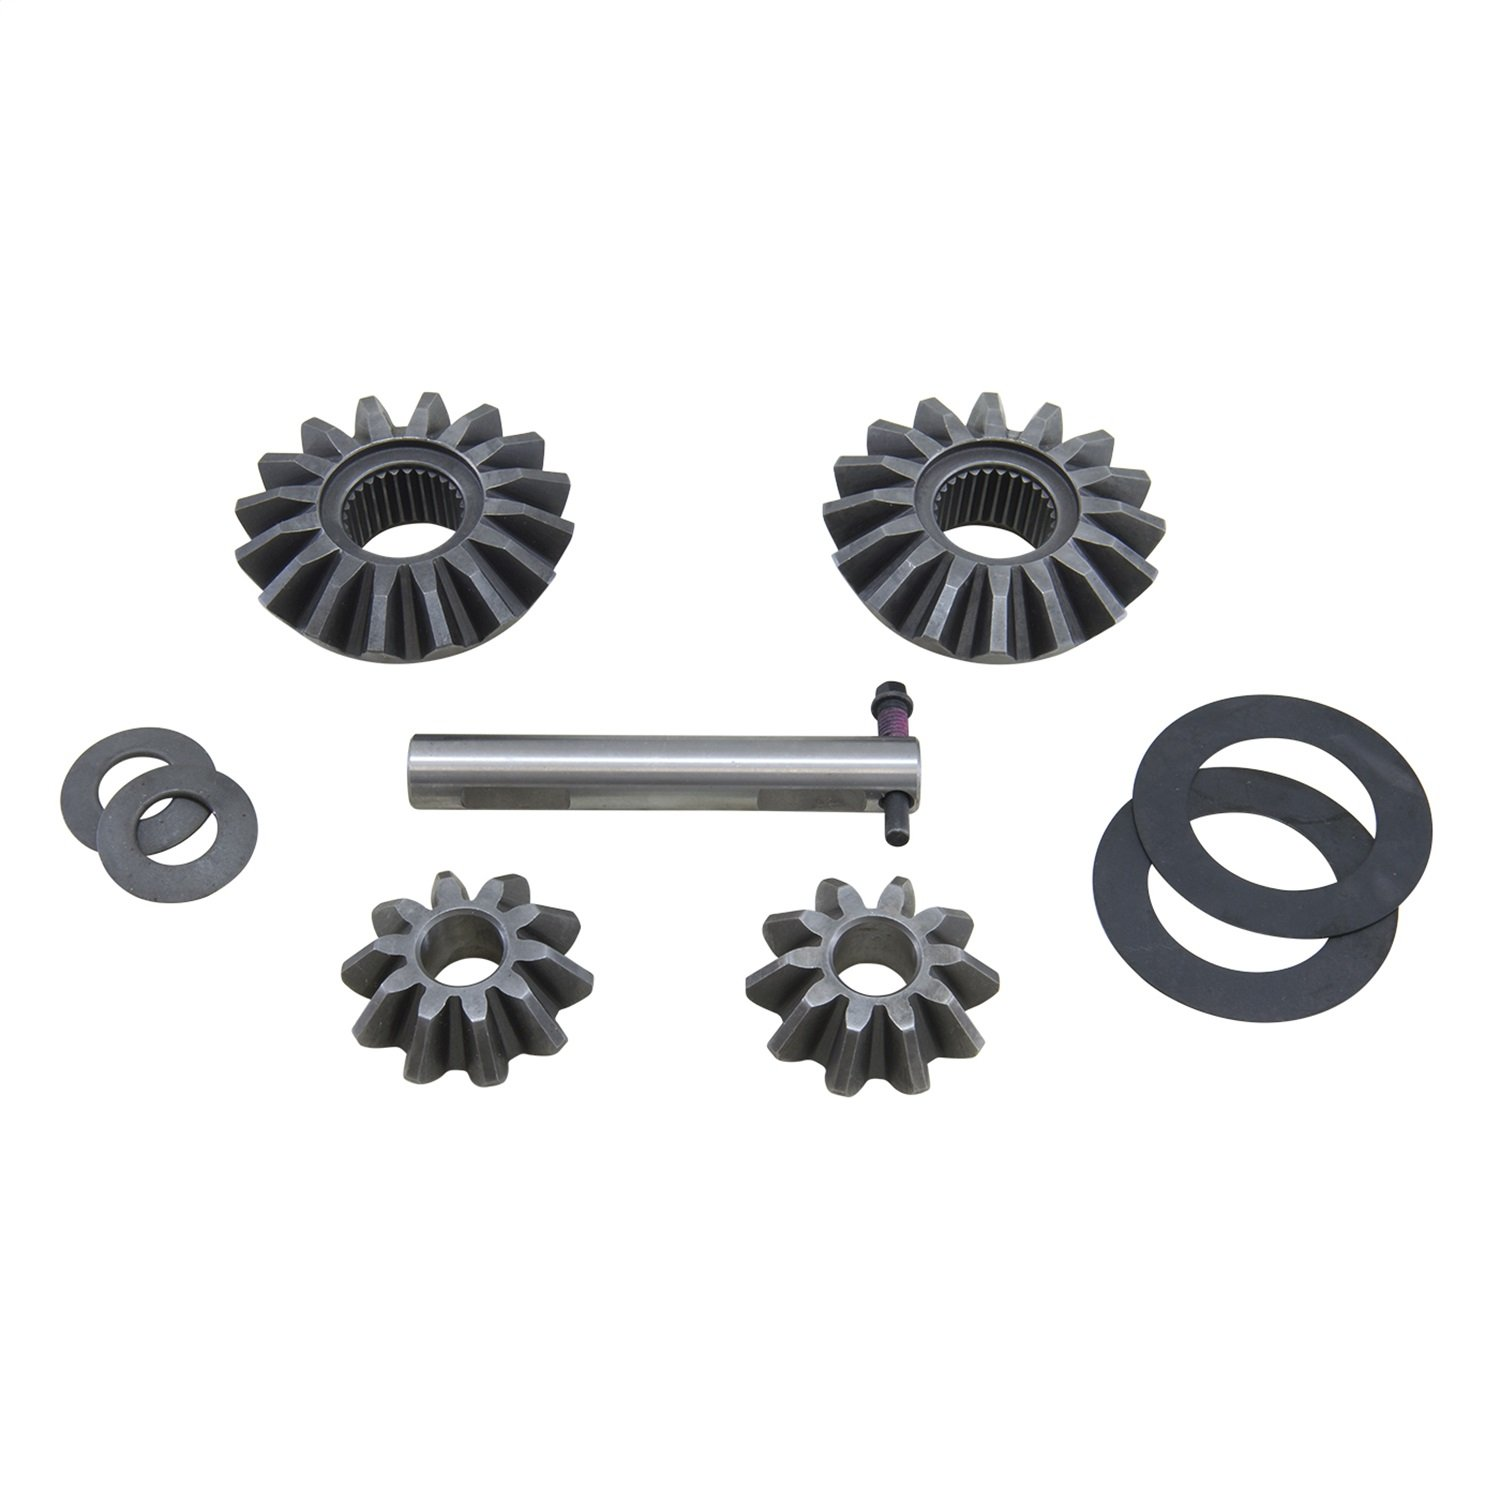 USA Standard Gear (ZIKF8.8-S-28) Spider Gear Set for Ford 28-Spline 8.8'' Differential